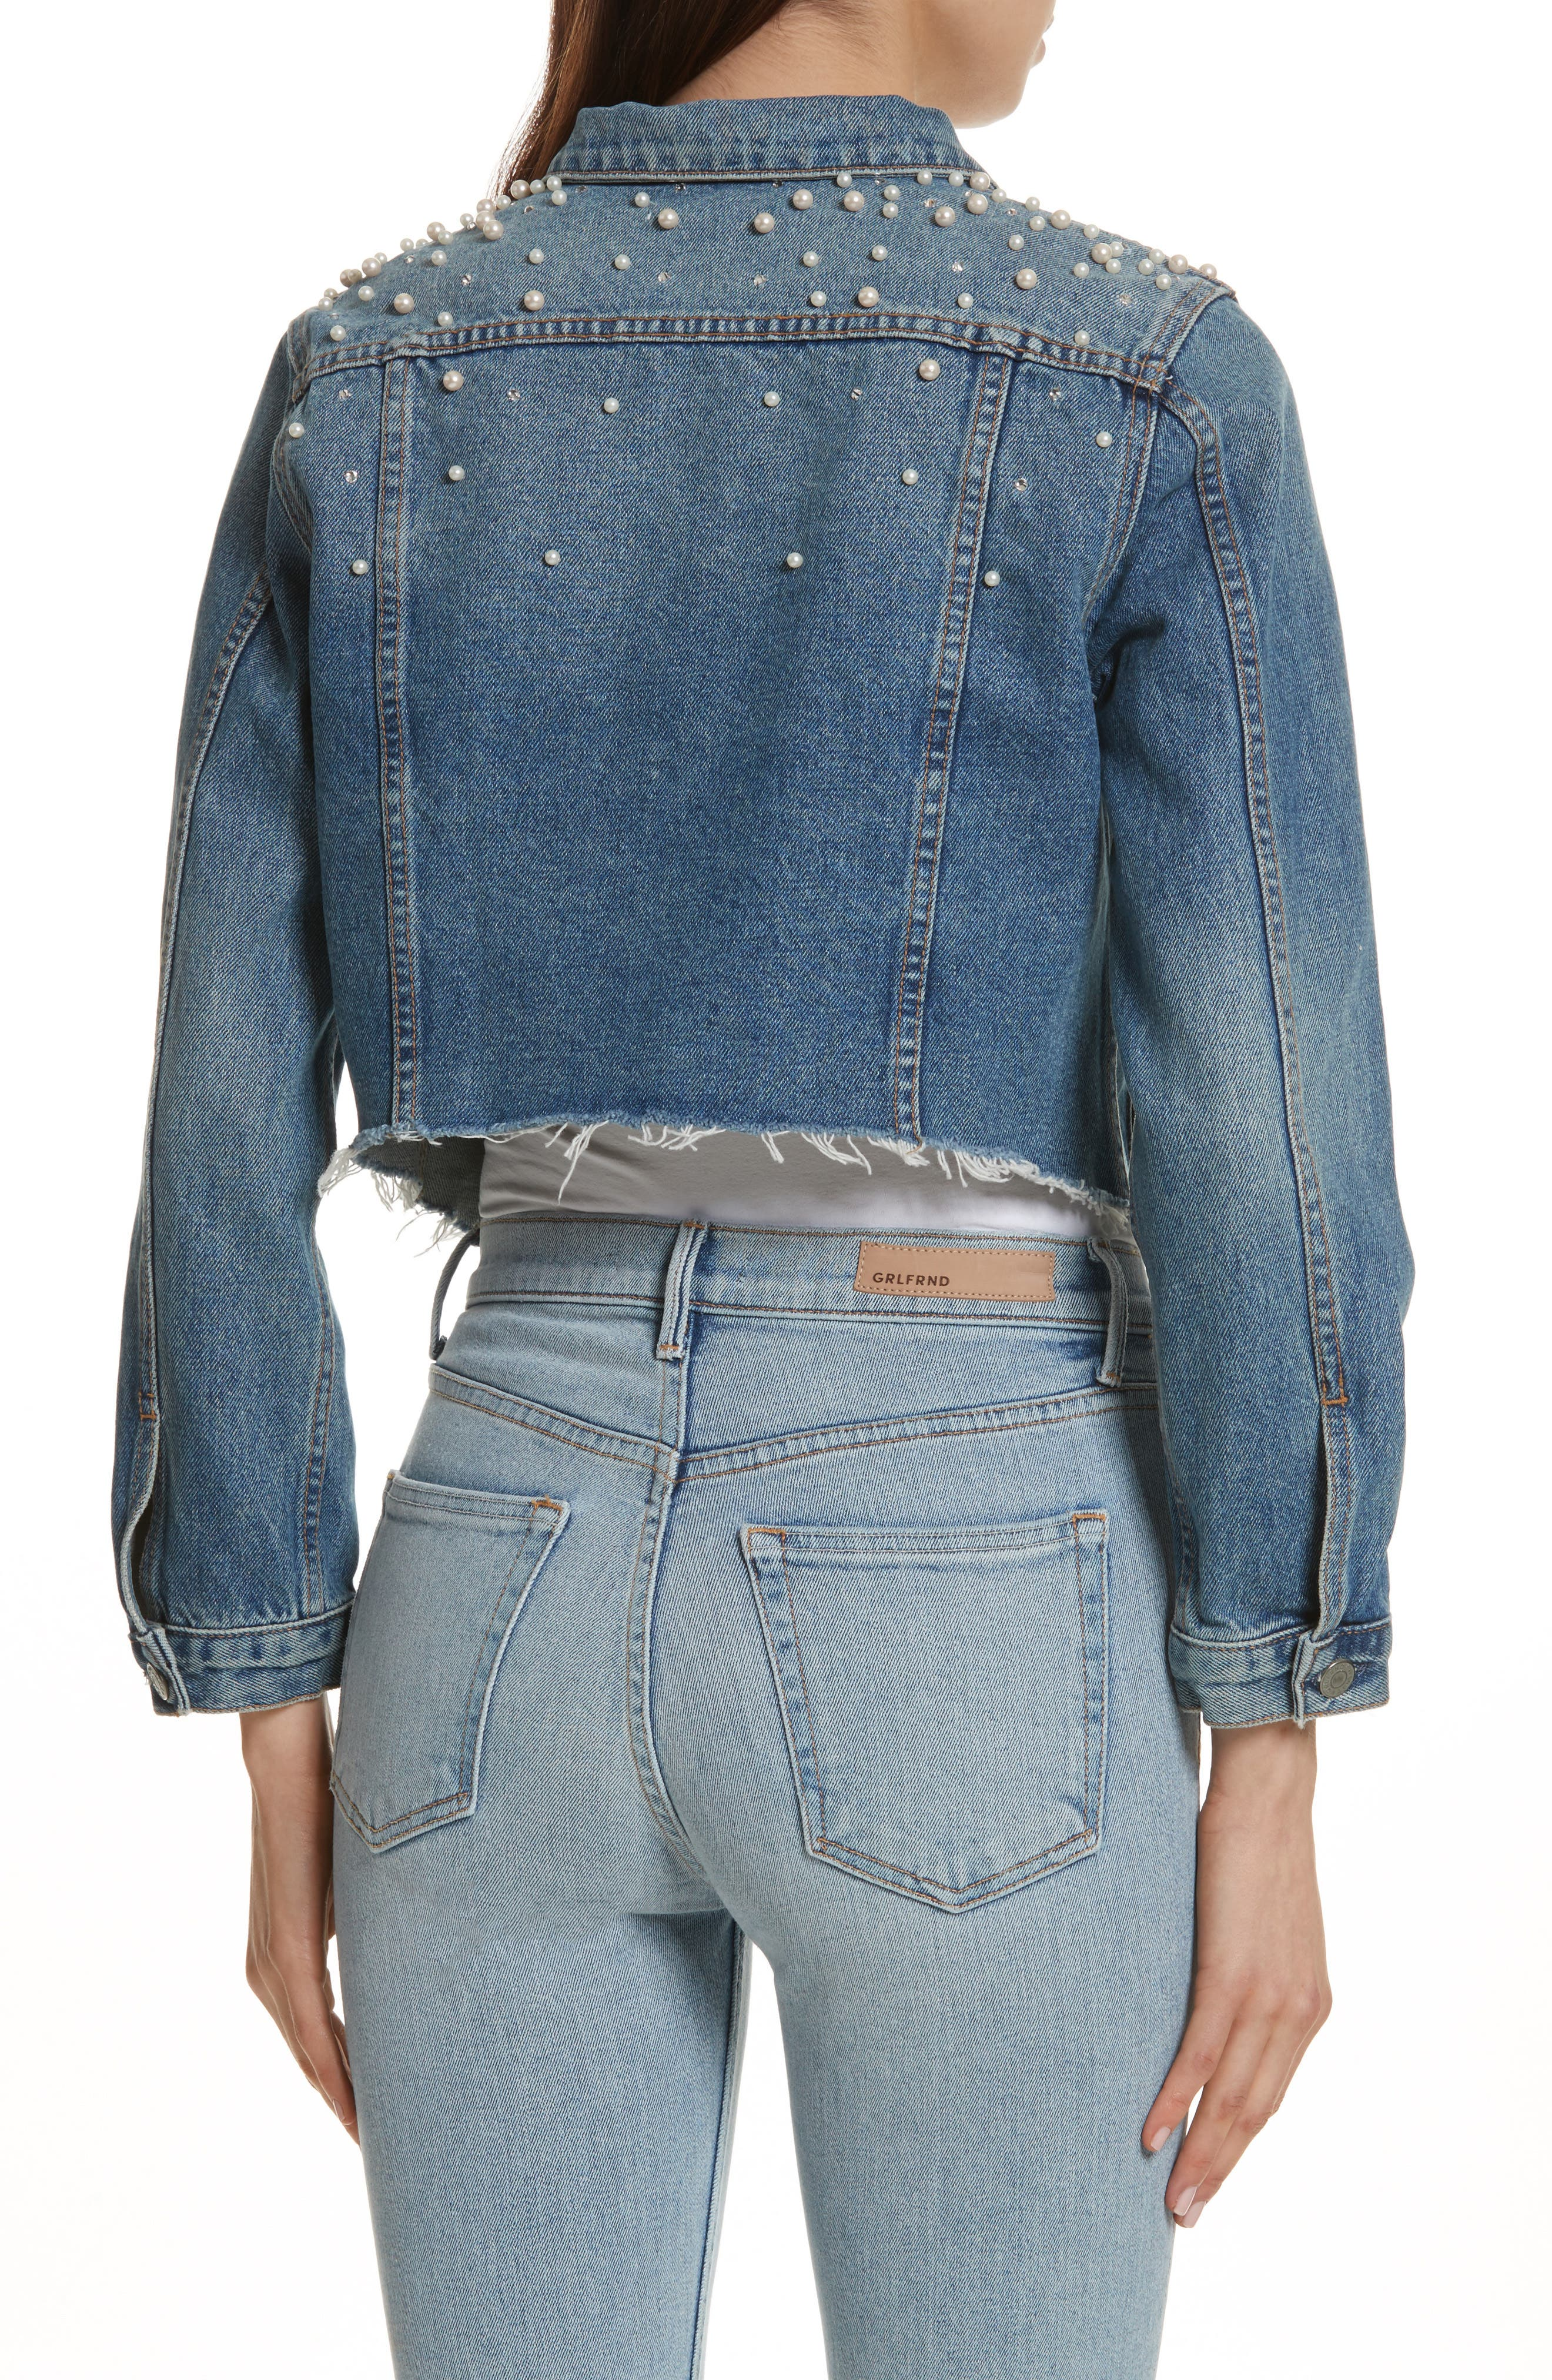 Eve Faux Pearl & Crystal Embellished Crop Denim Jacket,                             Alternate thumbnail 2, color,                             Cosmic Ray